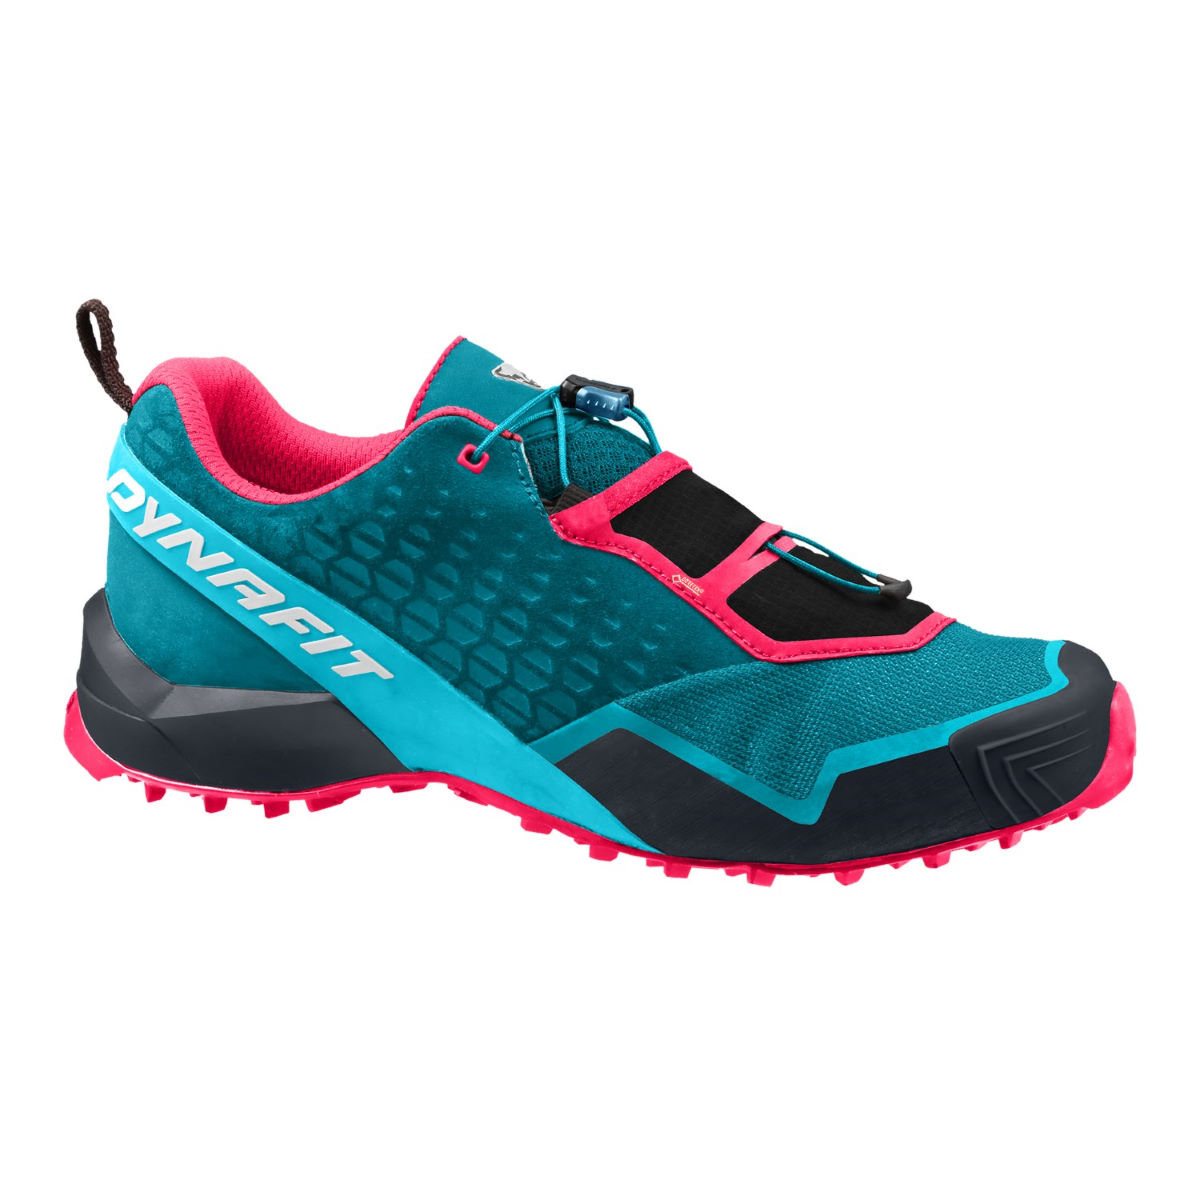 Dynafit Women's Speed MTN GTX Shoes - Zapatillas